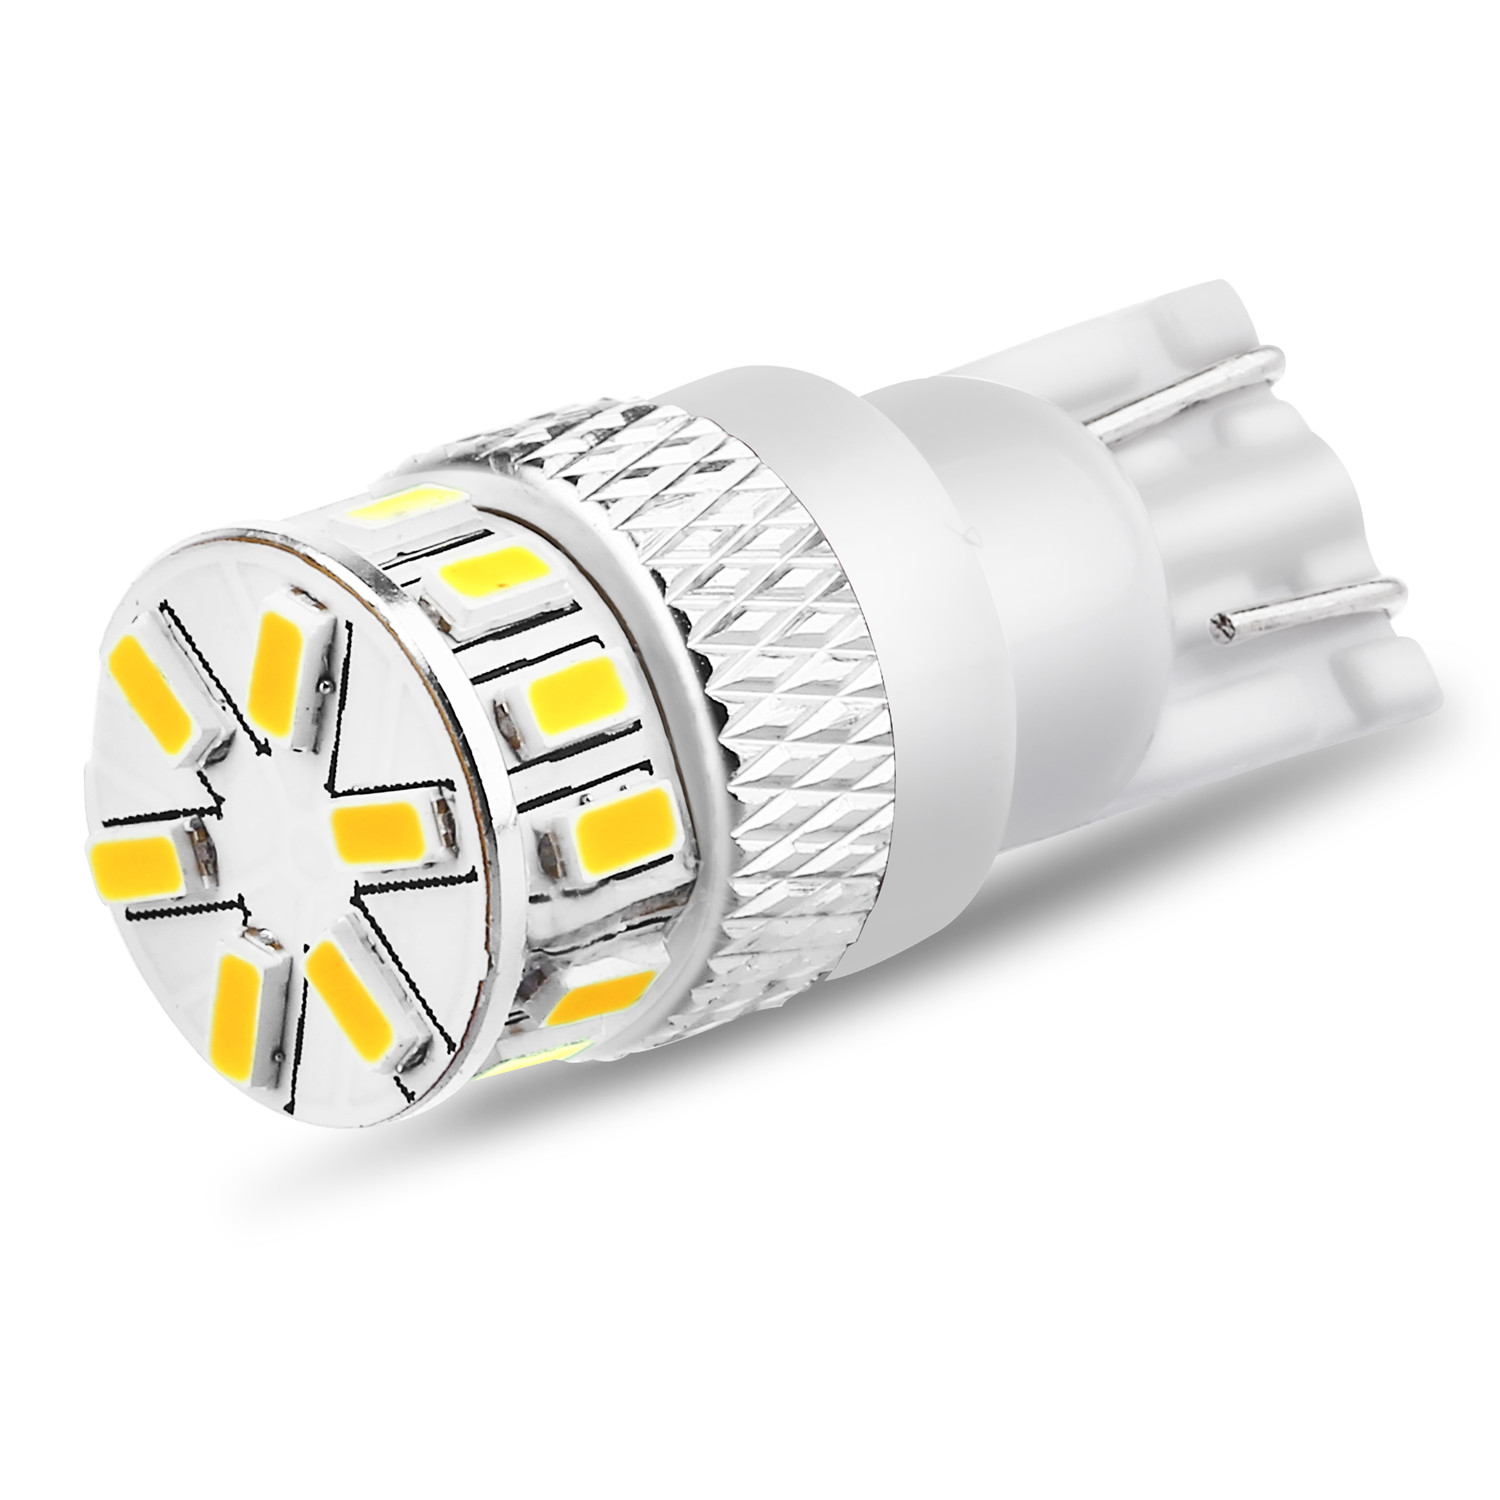 2000 Jeep Wrangler LED License Plate Light Bulb 12V Replacement